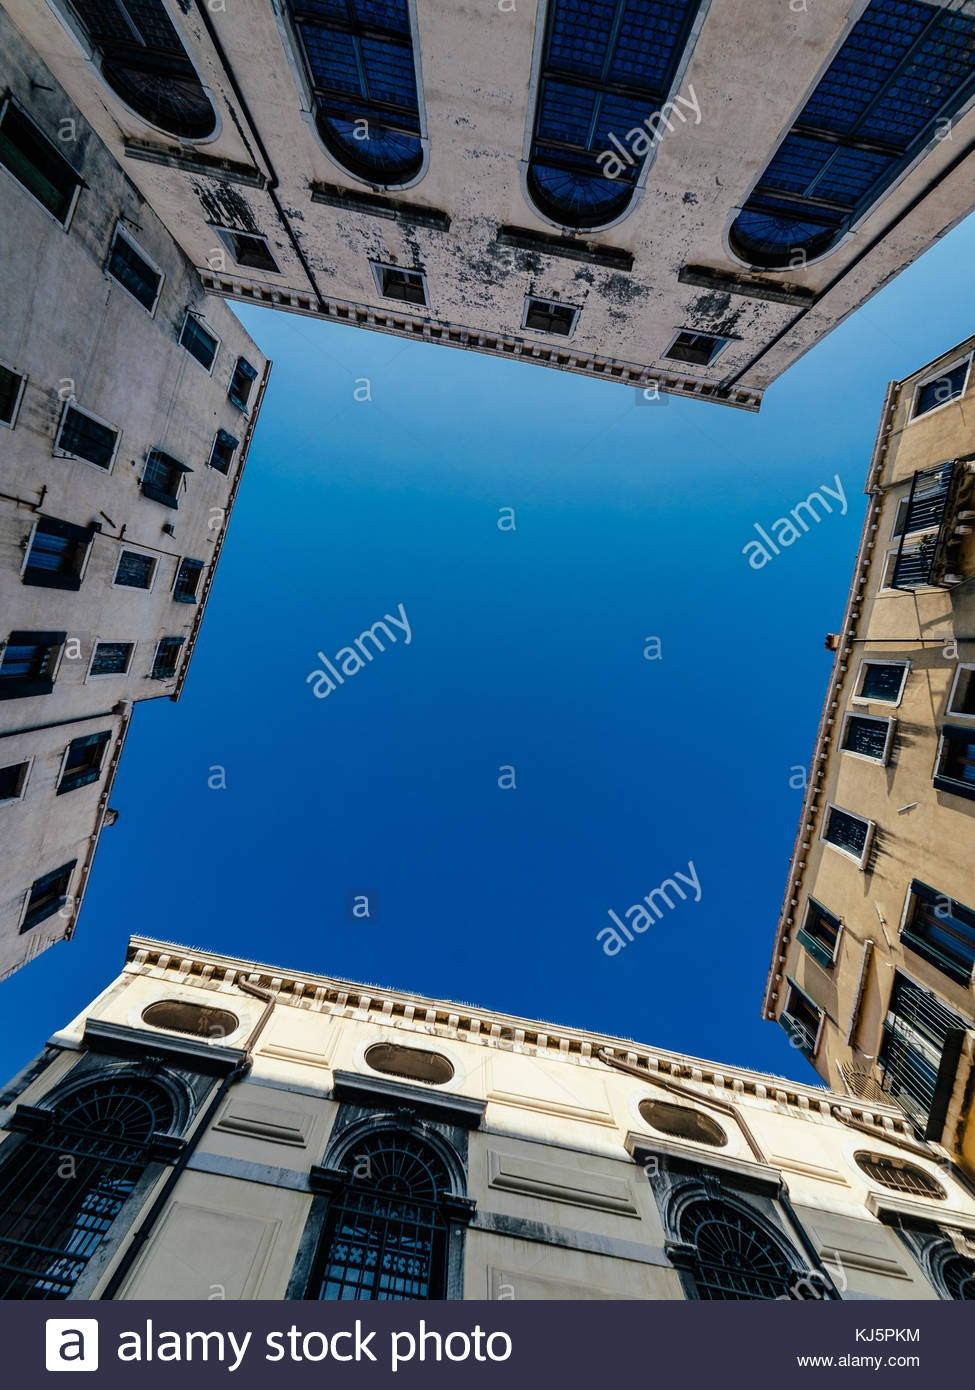 Looking up at the sky from between buildings - Stock Image